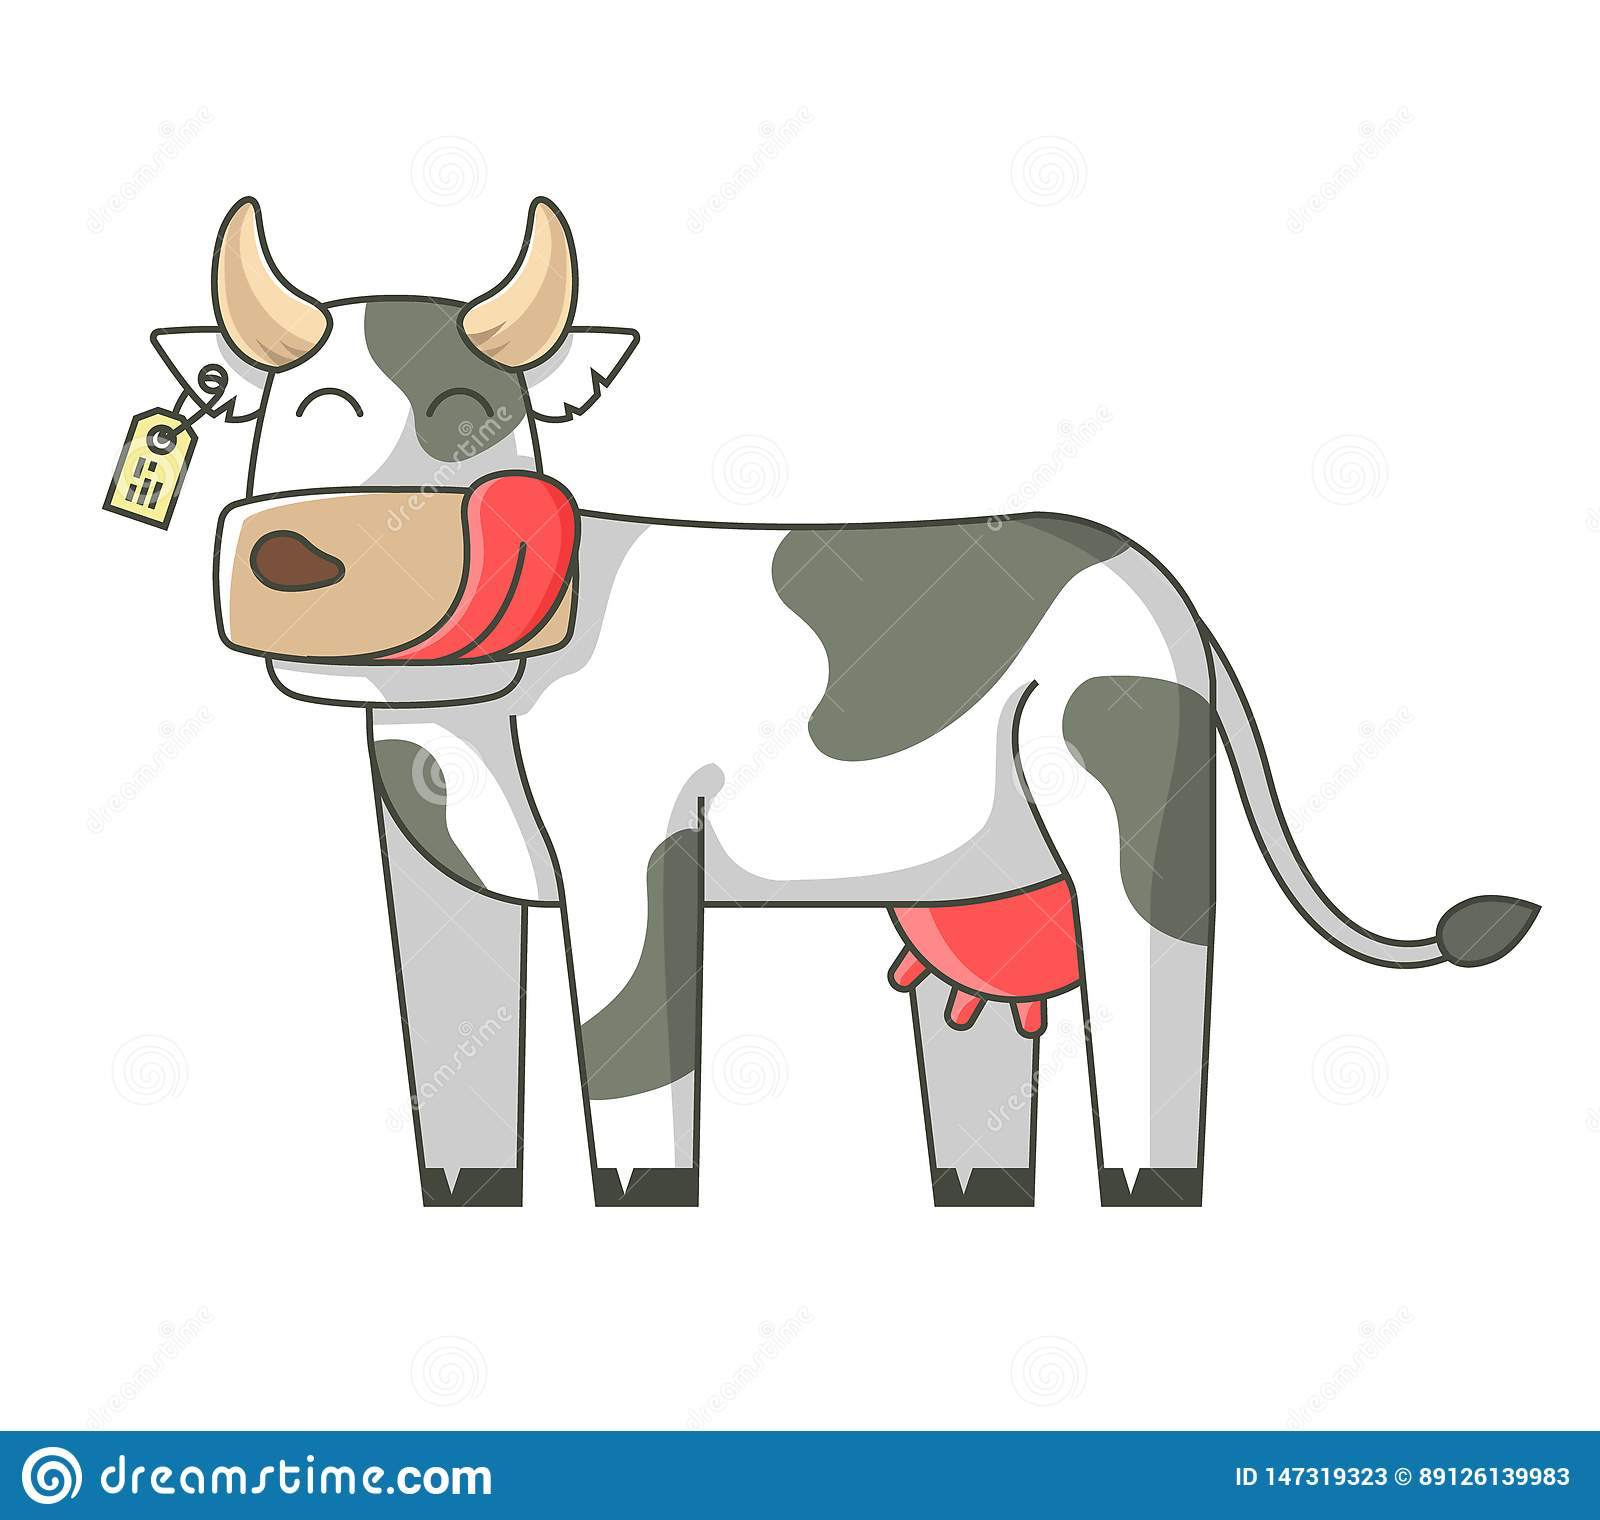 Cheerful cow on a white background. licking face. on a white background.